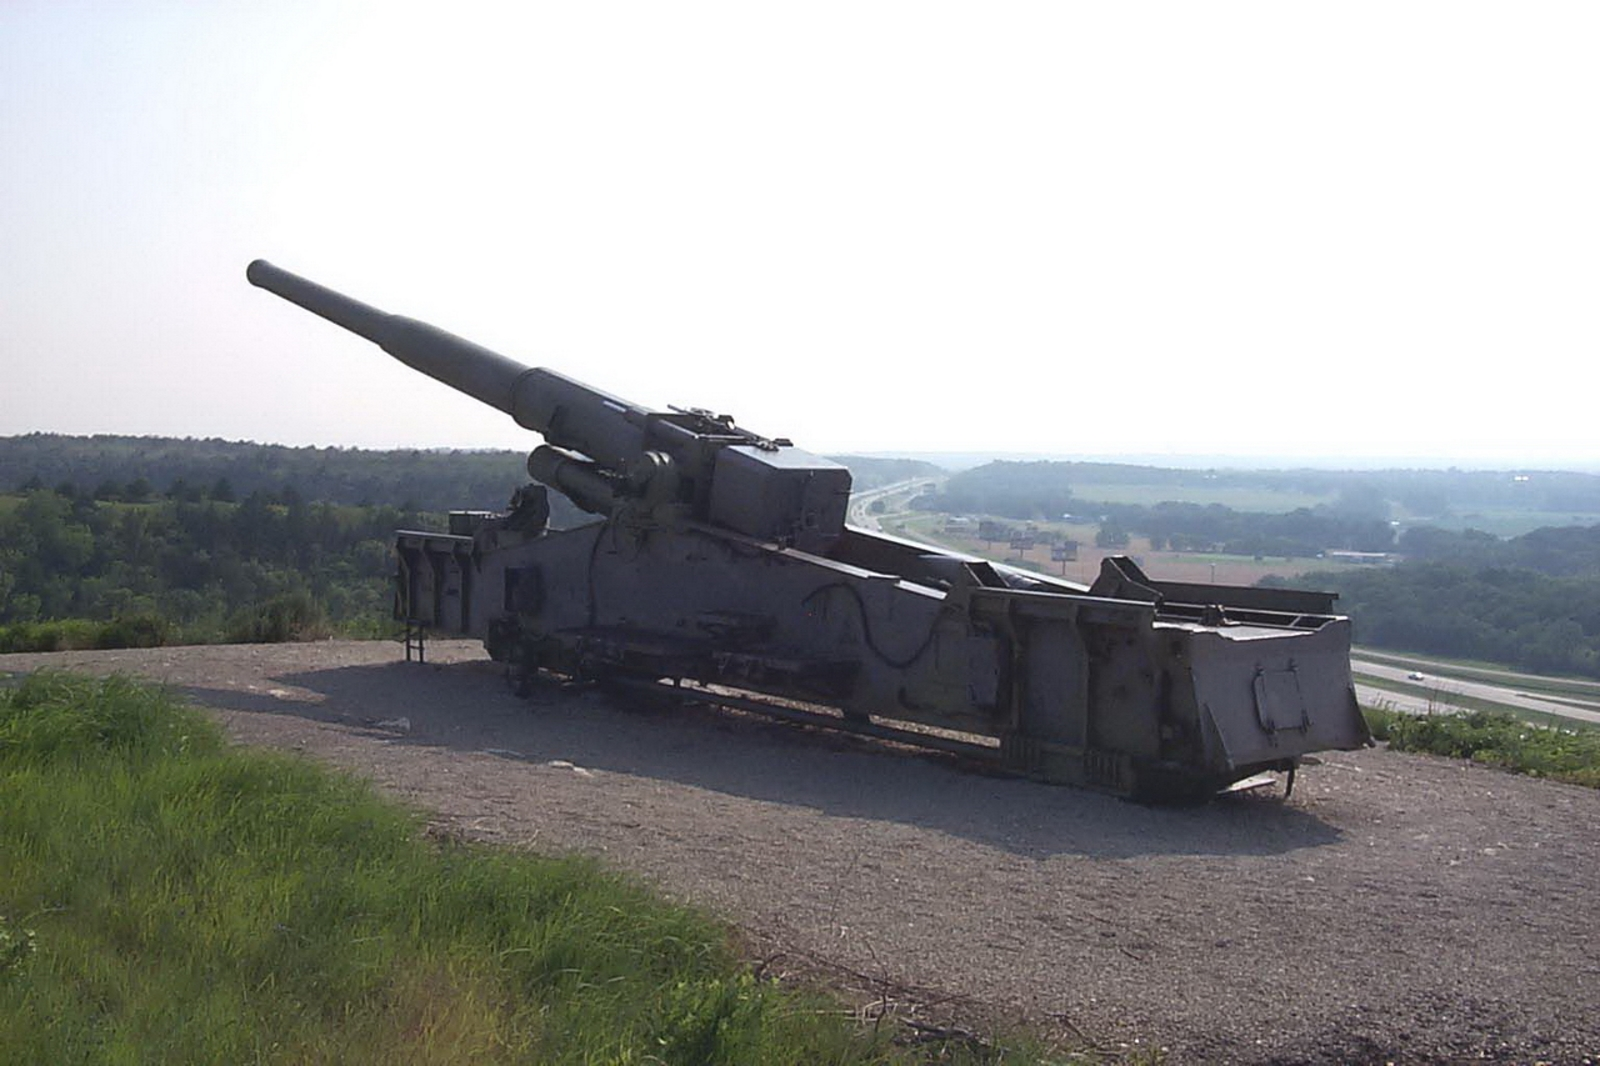 M65 280 mm Atomic Cannon